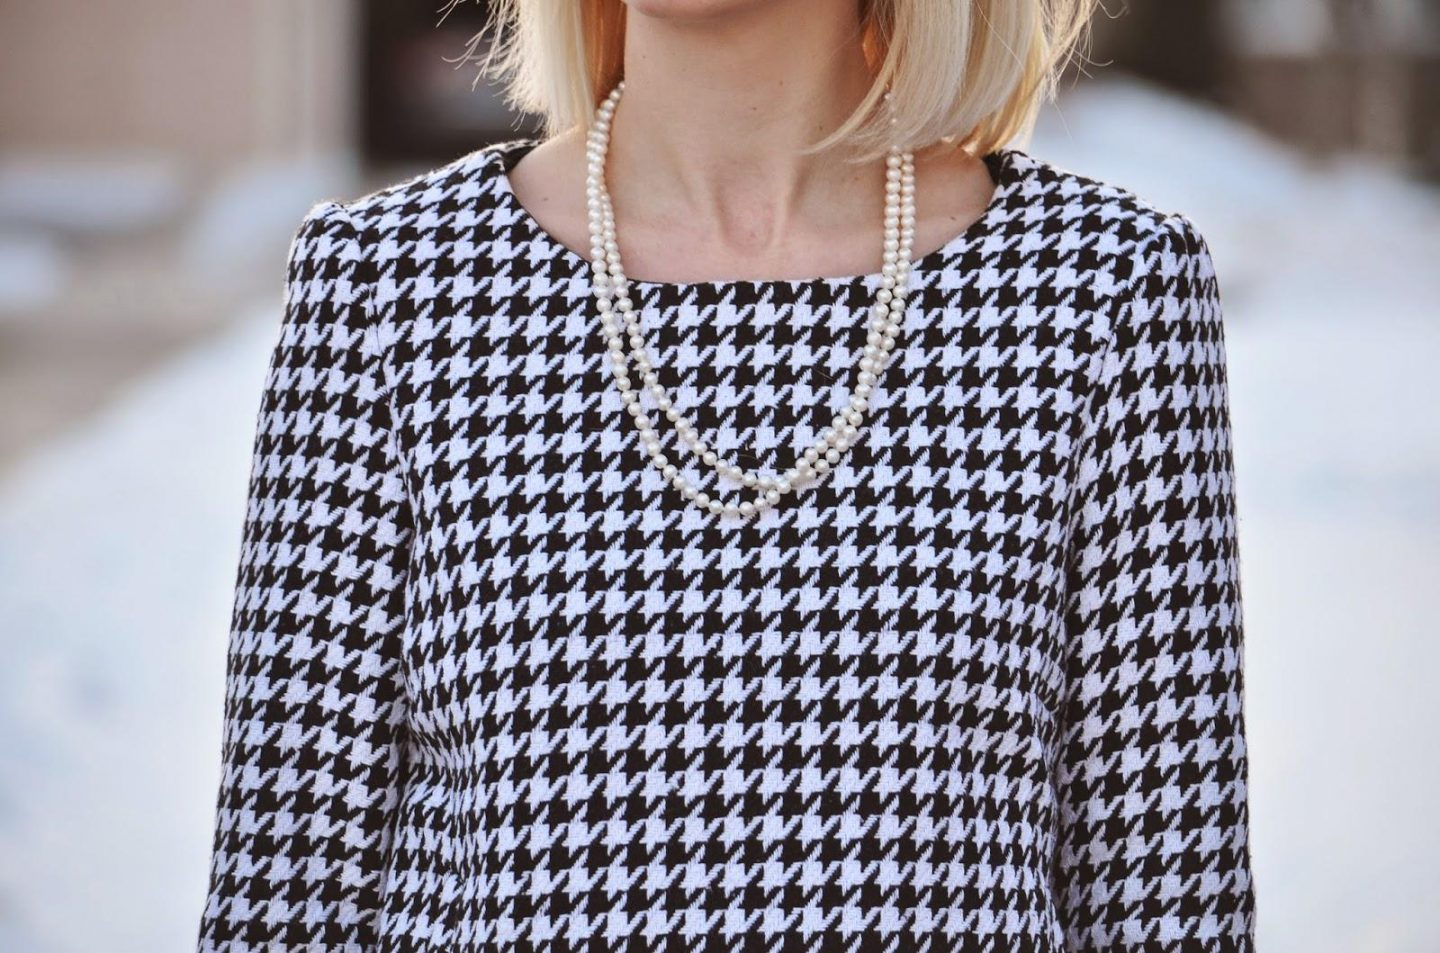 Style, OOTD, Houndstooth, pearl necklace, girls love pearls, black and white, forever21, Chicwish, Asos, houndstooth style, classy style